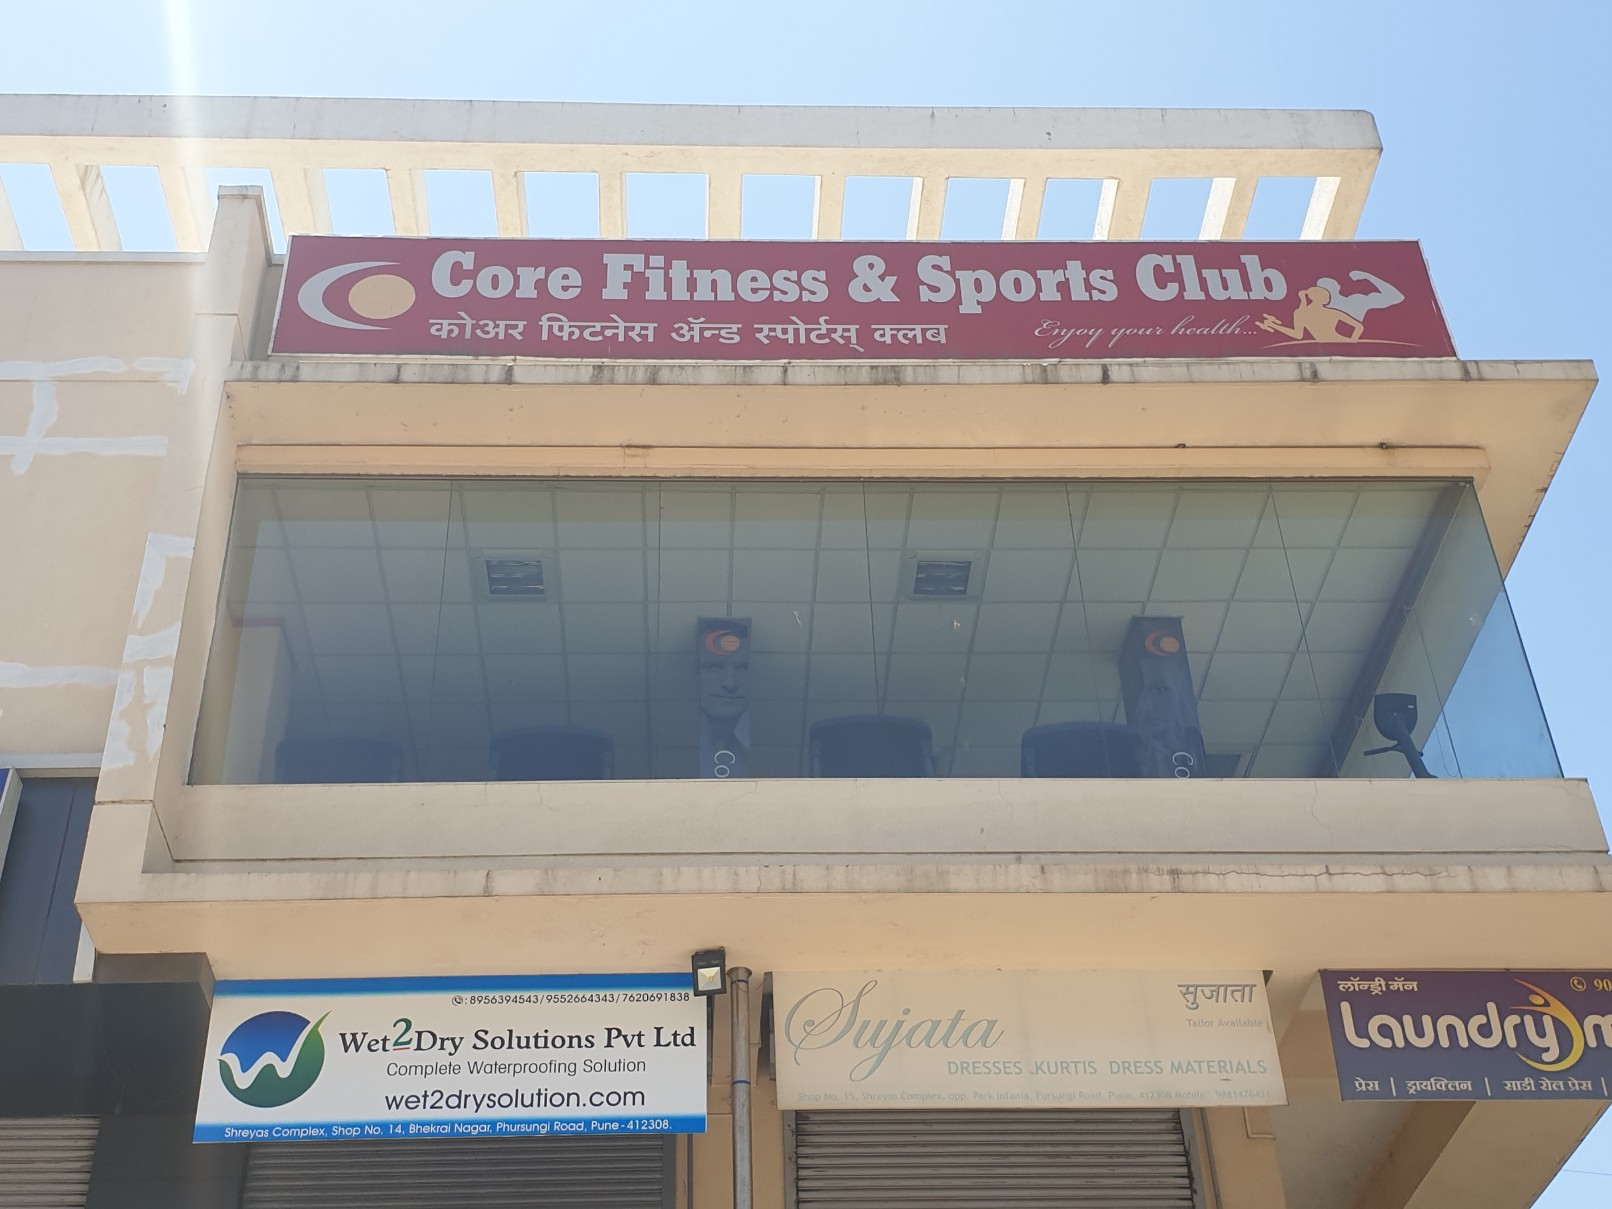 Core fitness and sports club Fitness Center in Fursungi Pune